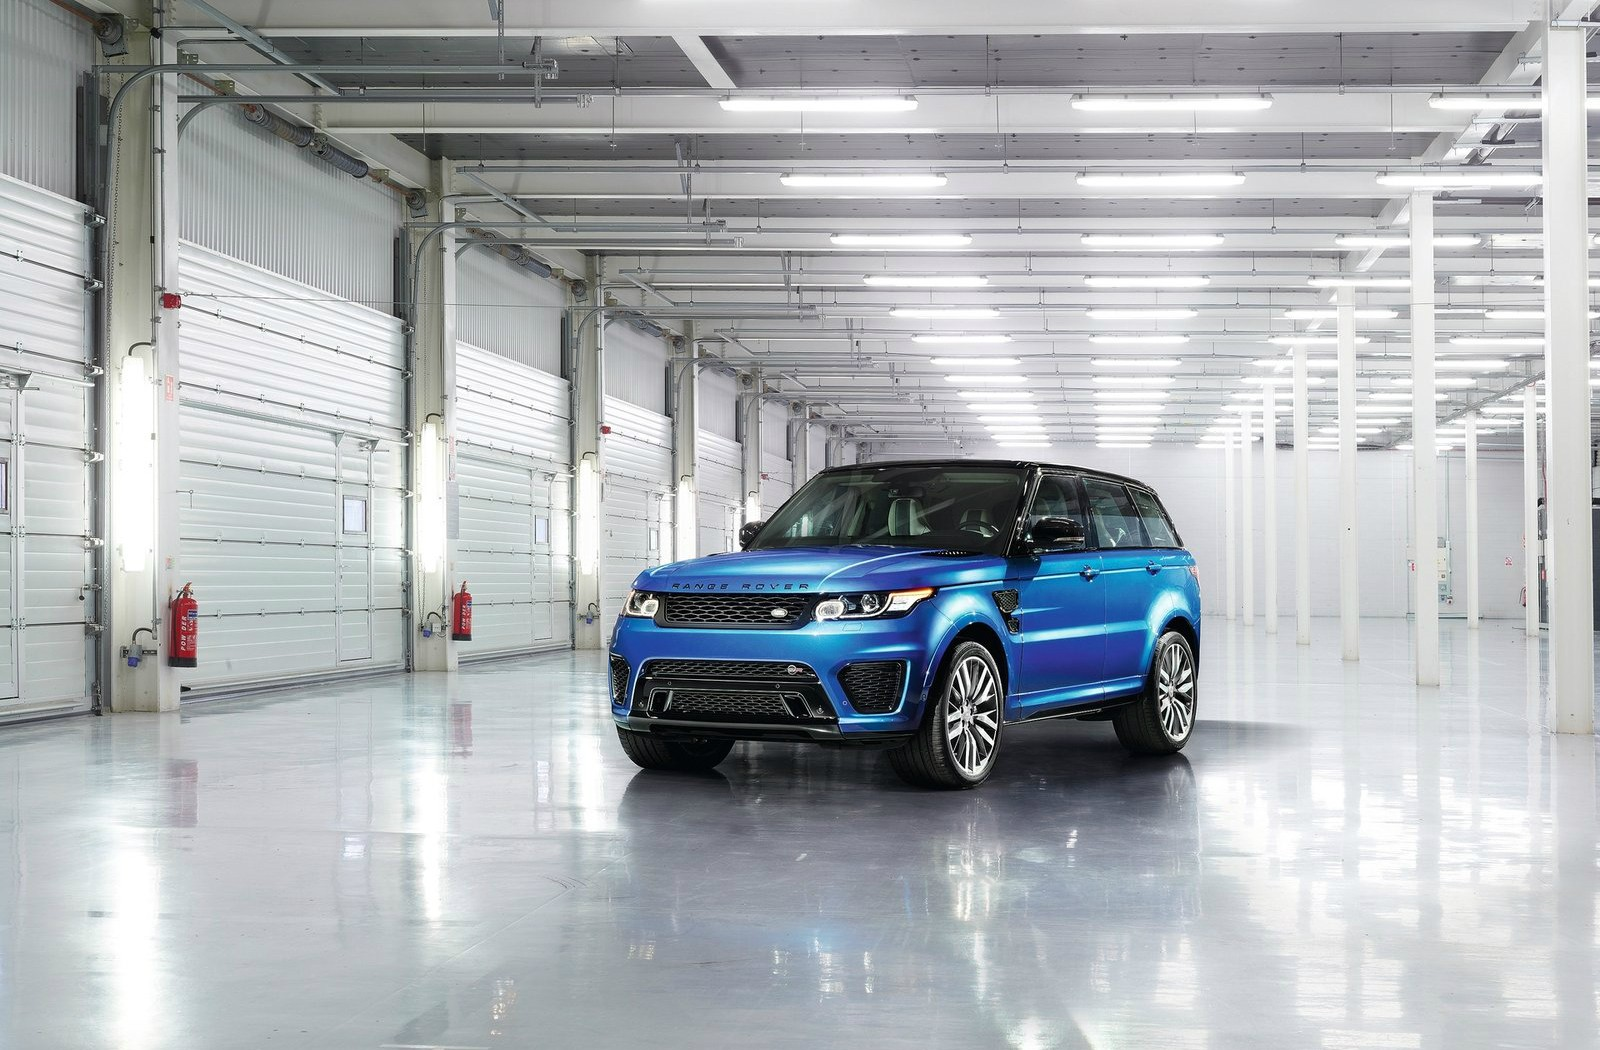 2015 Range Rover Sport Svr Pricing Announced Autoevolution